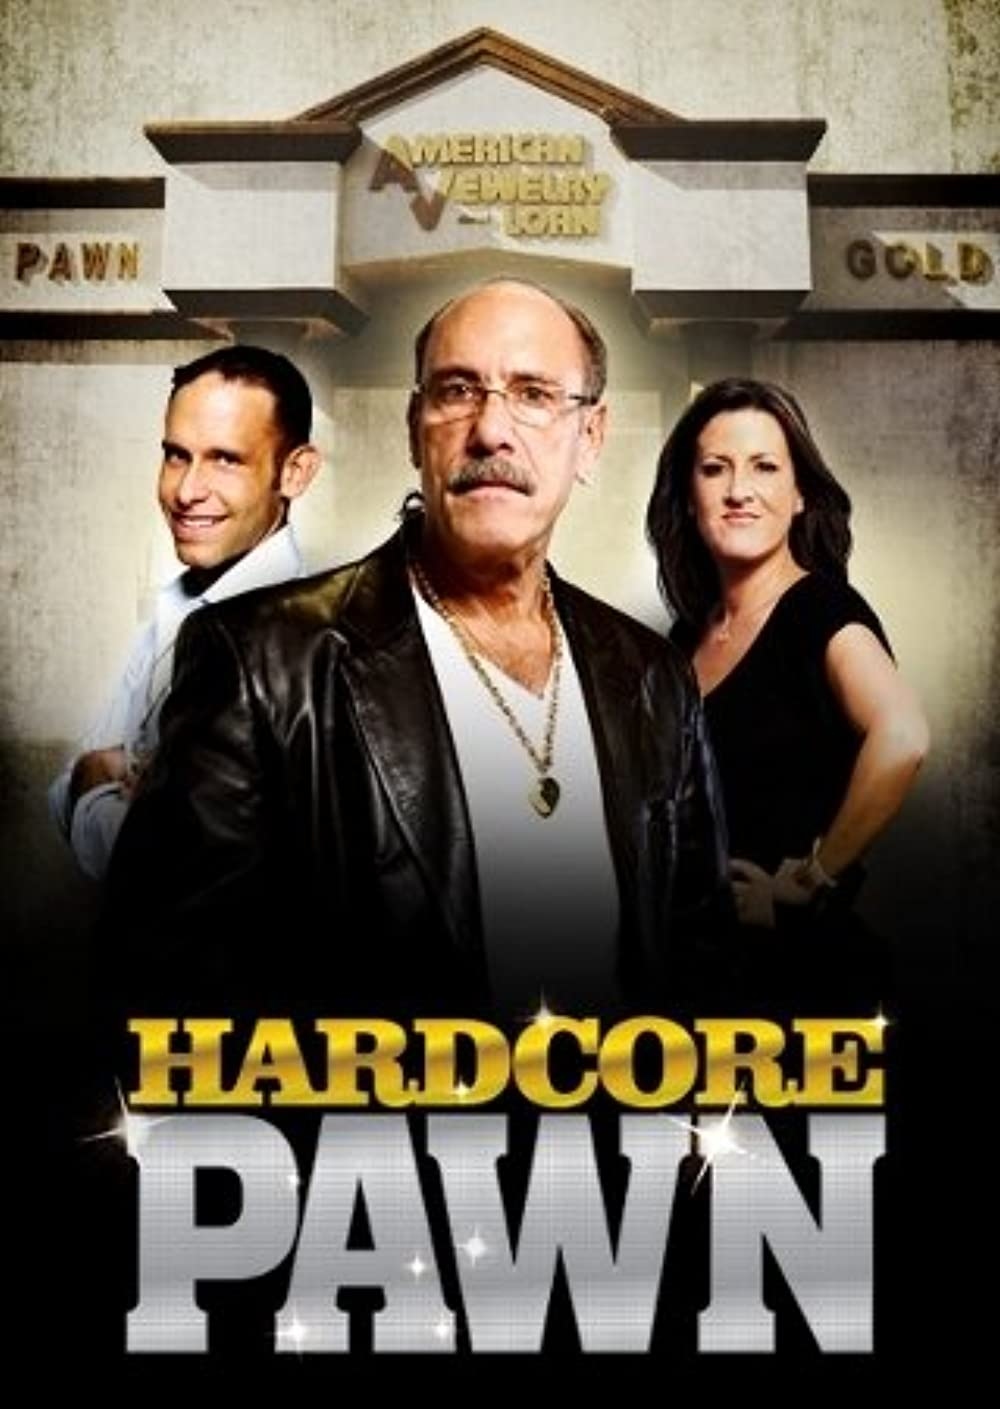 Has hardcore pawn been cancelled